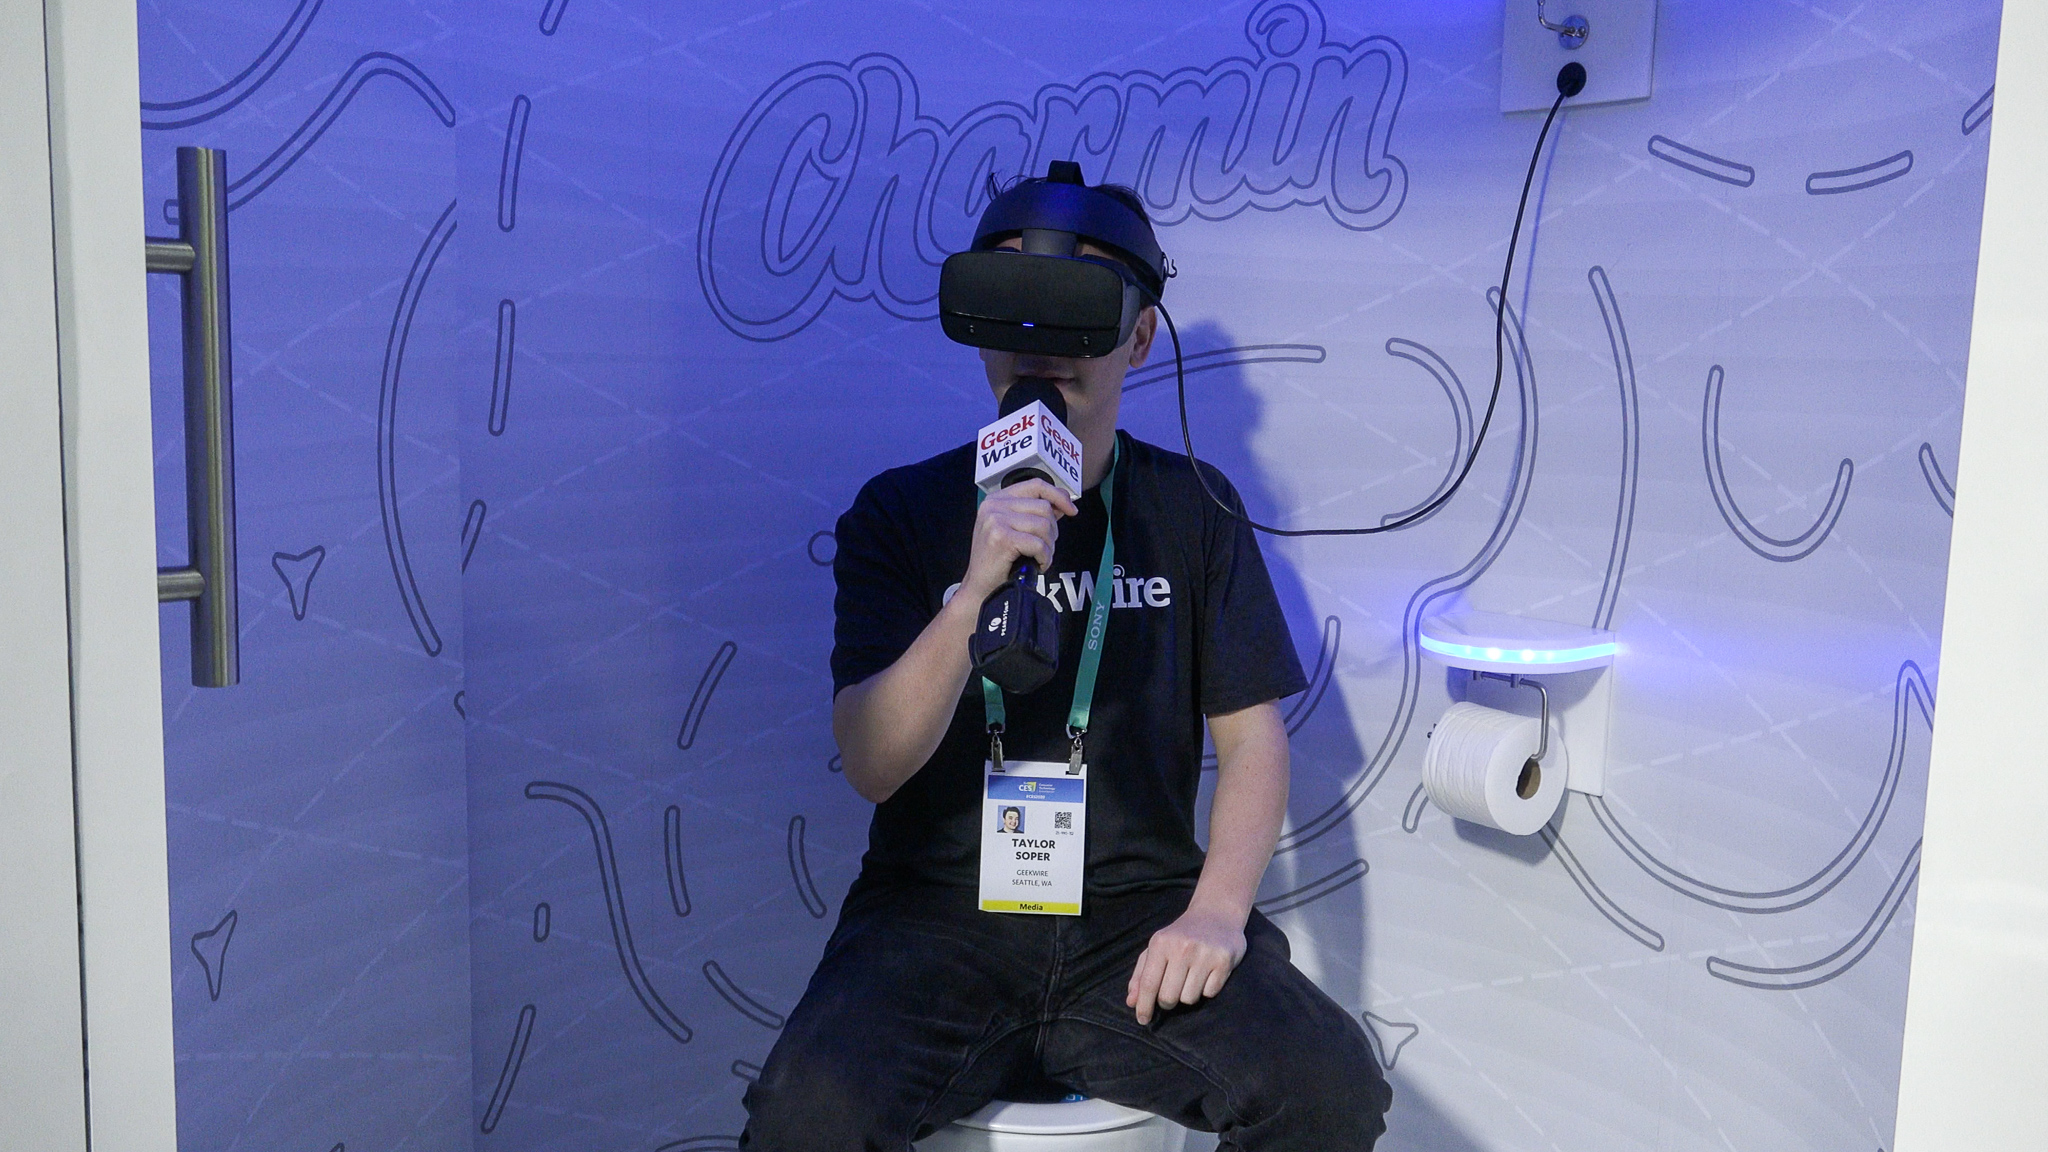 A glimpse of the future at CES: Celebs, parallel reality, and next-gen toilets at the big tech show